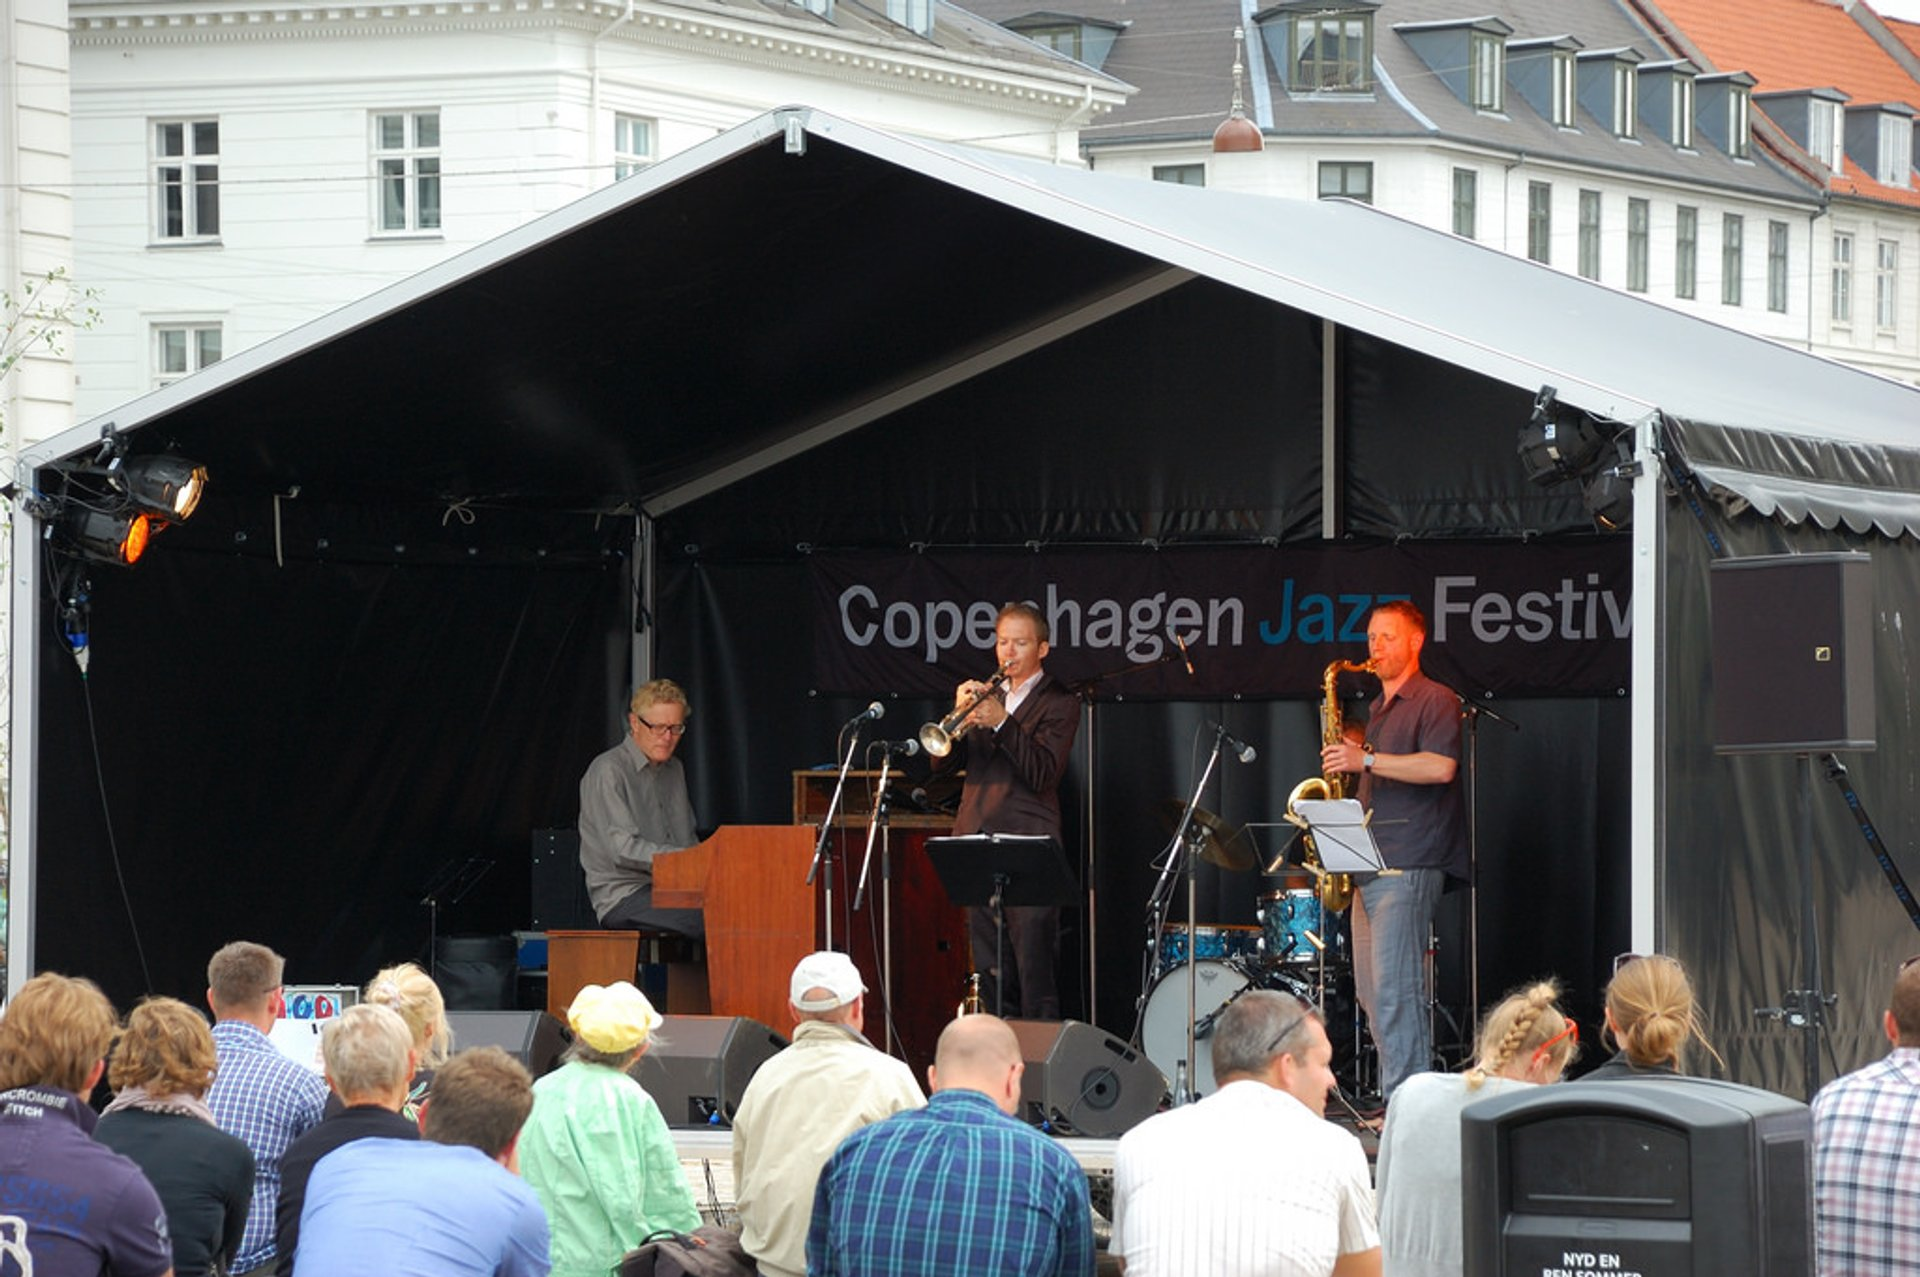 Copenhagen Jazz Festival in Copenhagen - Best Season 2019